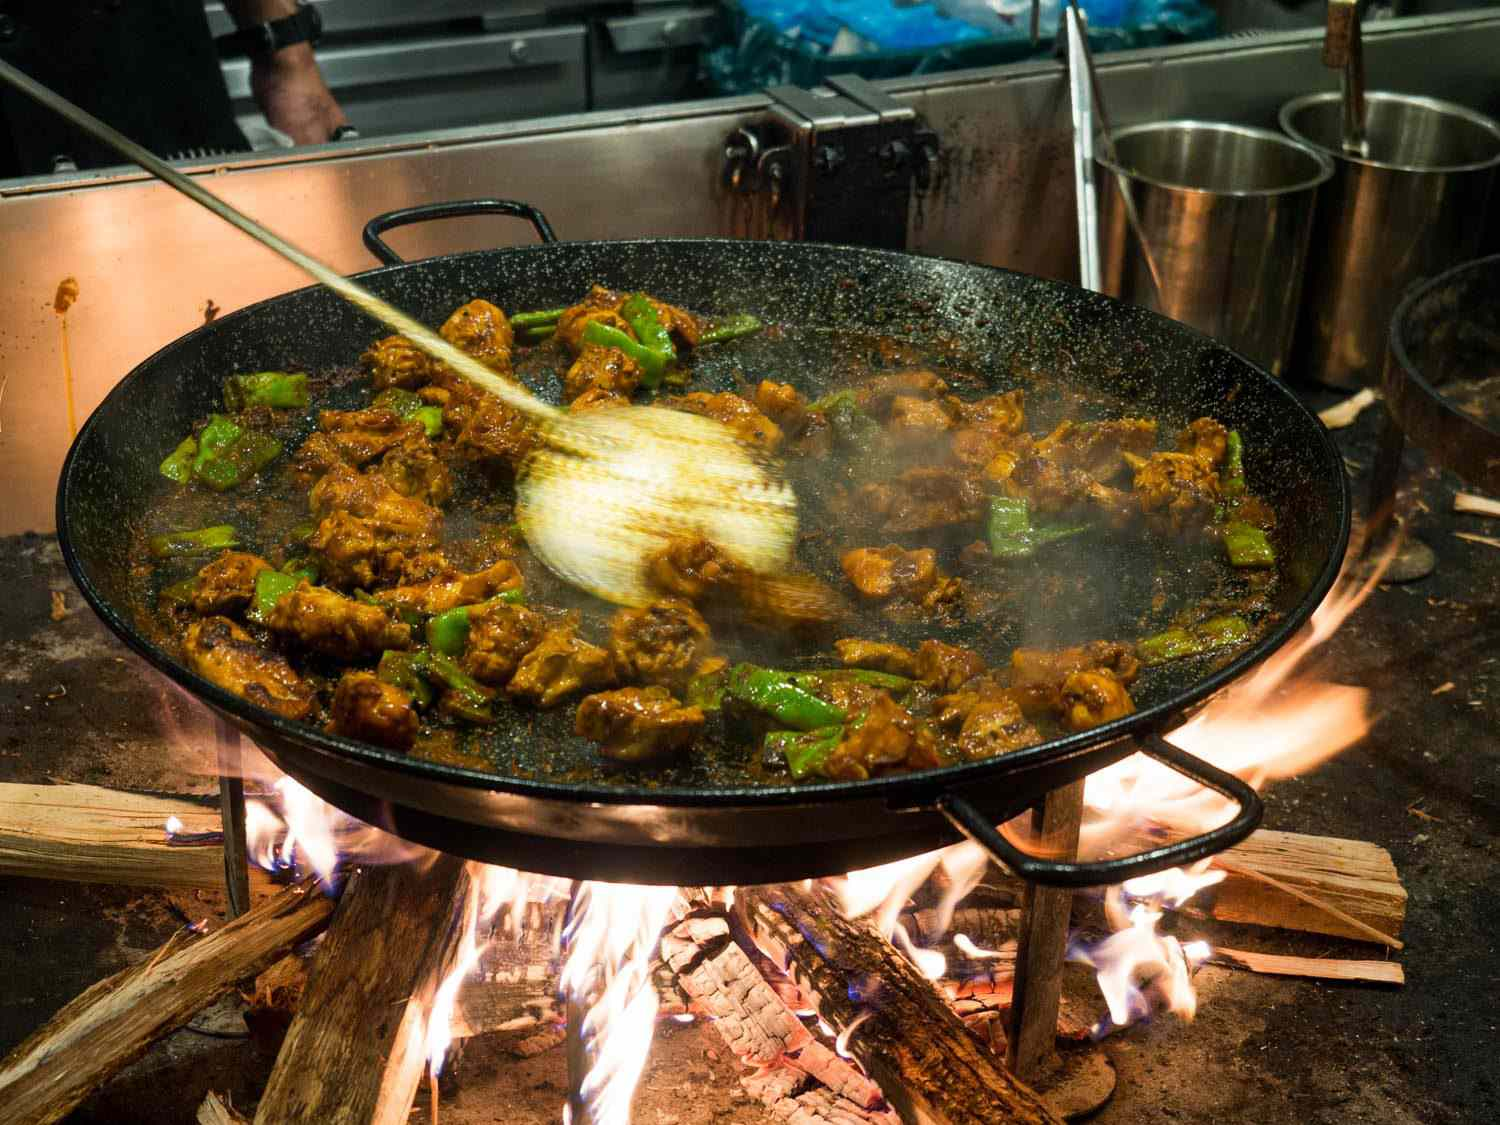 A traditional Valencian Paella being cooking at Mercado Little Spain: Pieces of rabbit and chicken, along with romano beans, are all cooked hard until deeply browned with tomato, before the stock and rice are added.